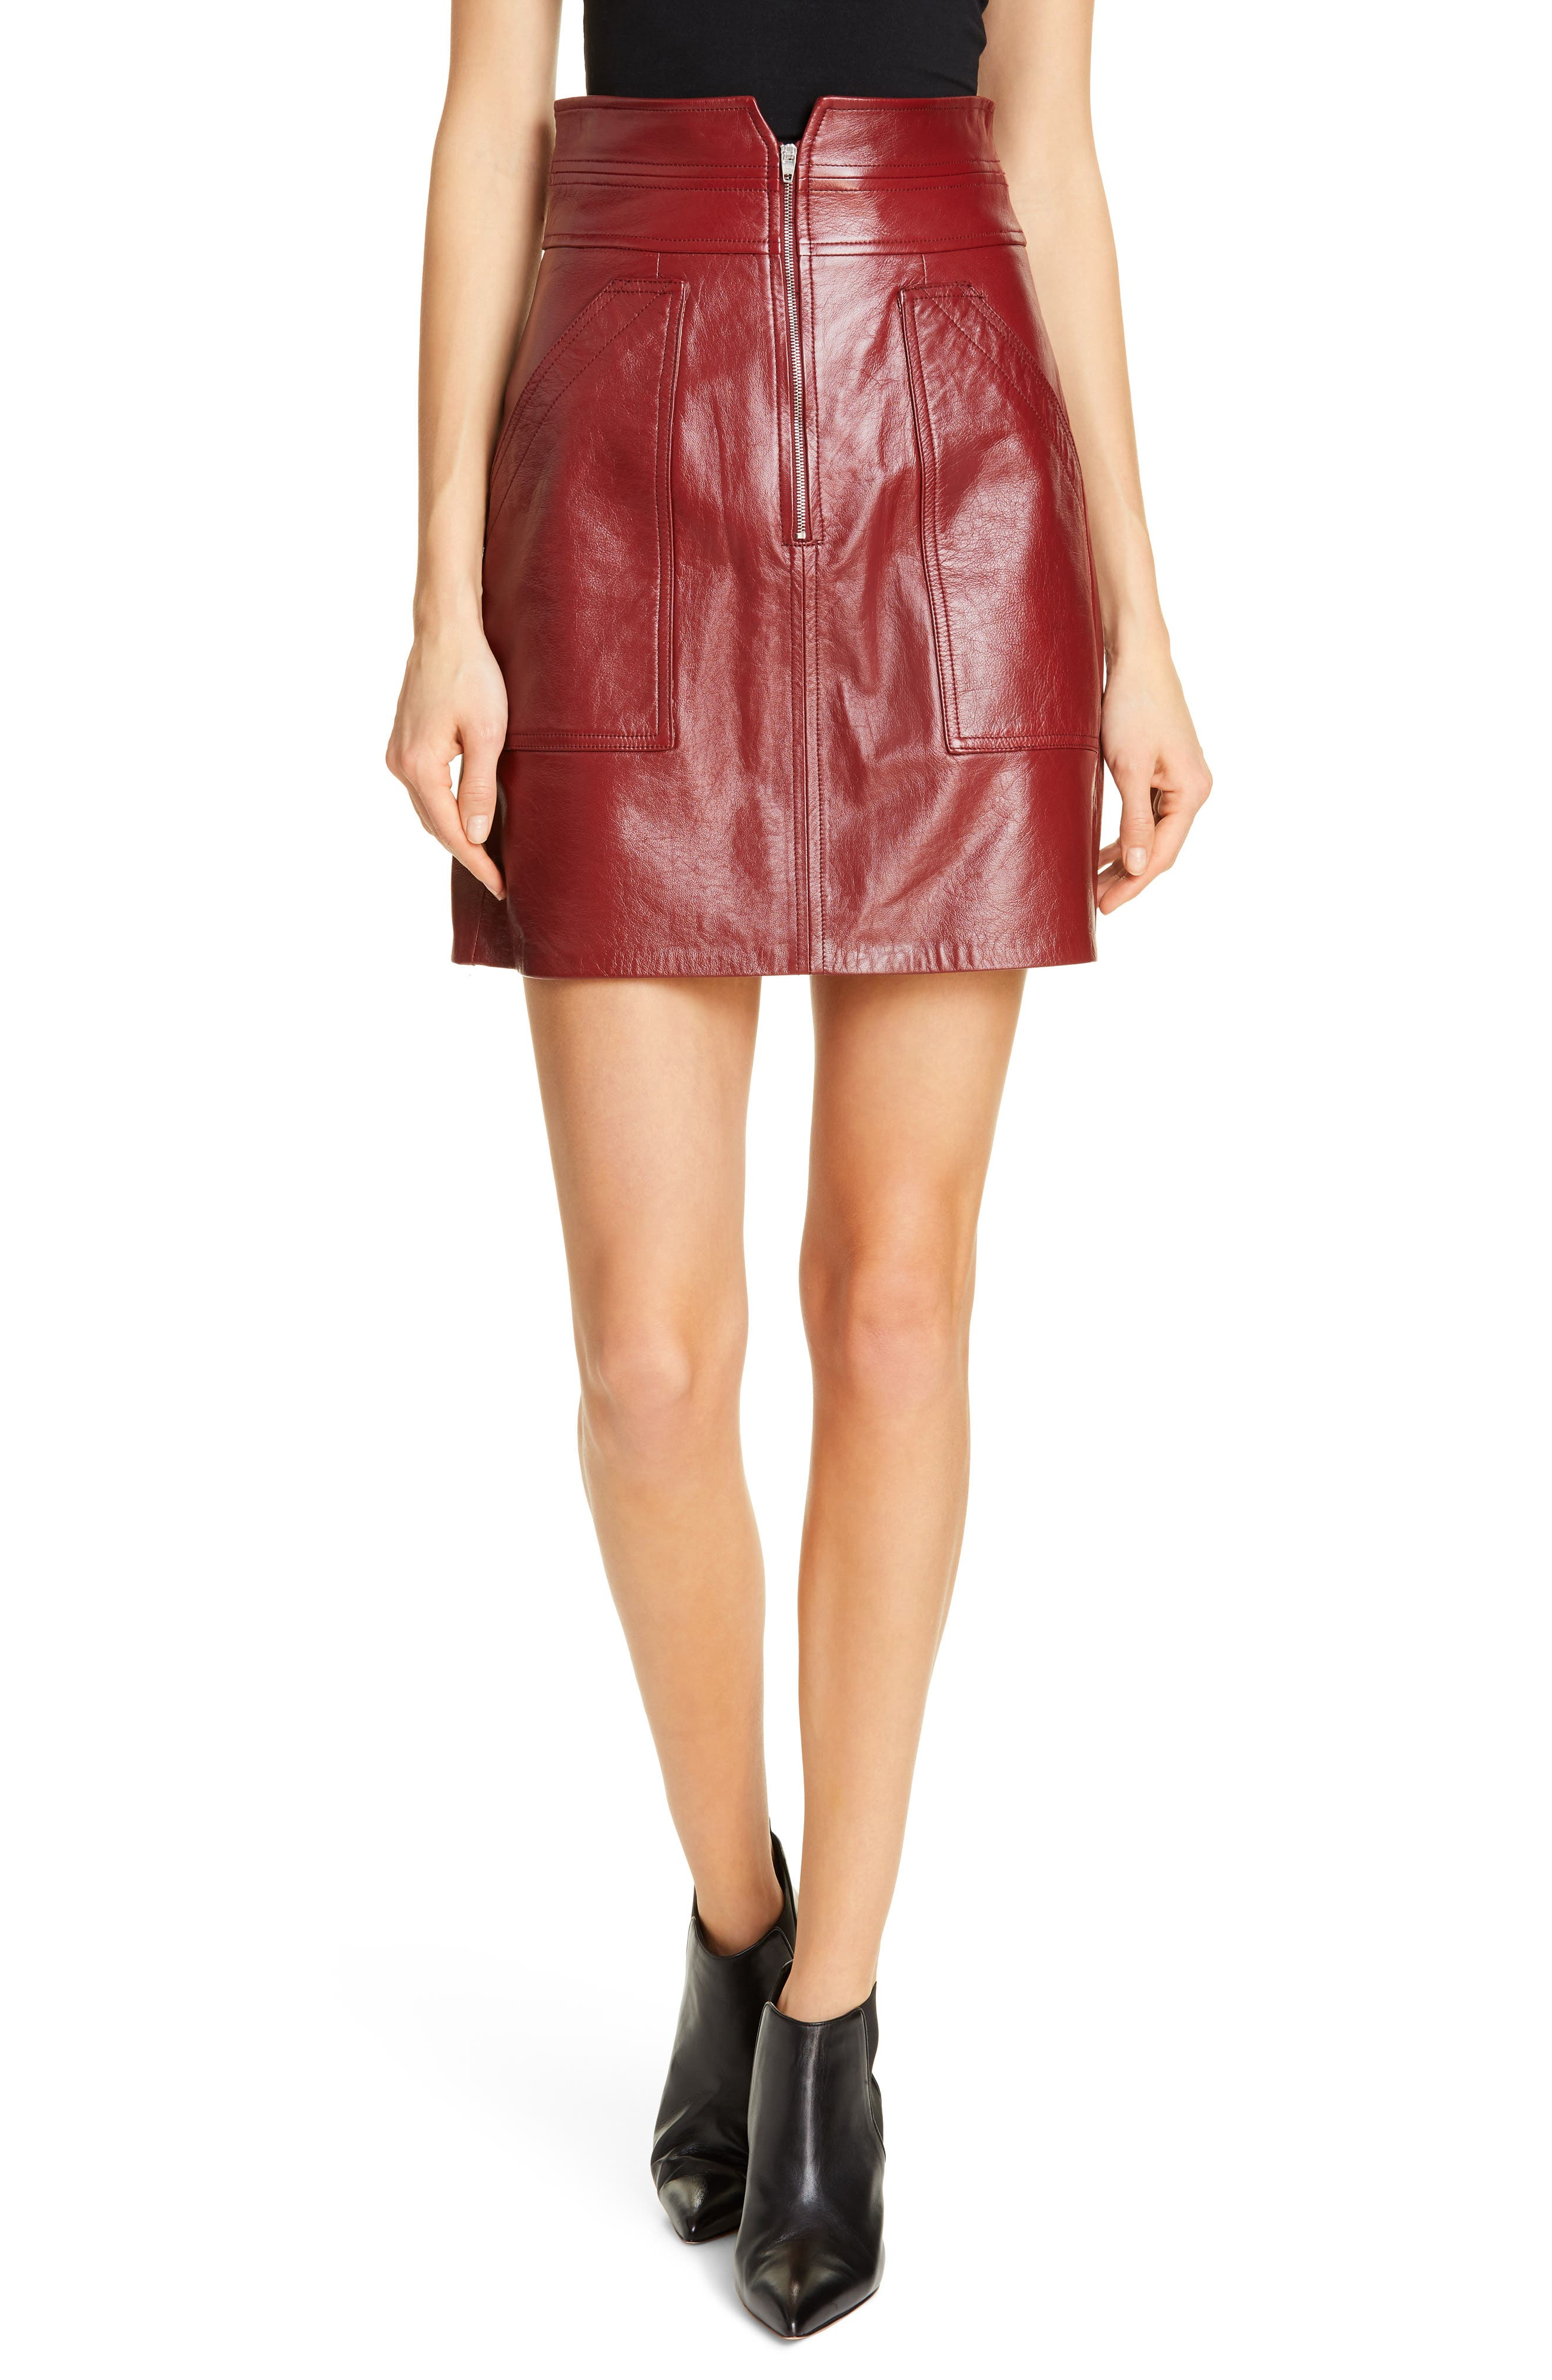 REBECCA TAYLOR, Leather Skirt, Main thumbnail 1, color, SPICE